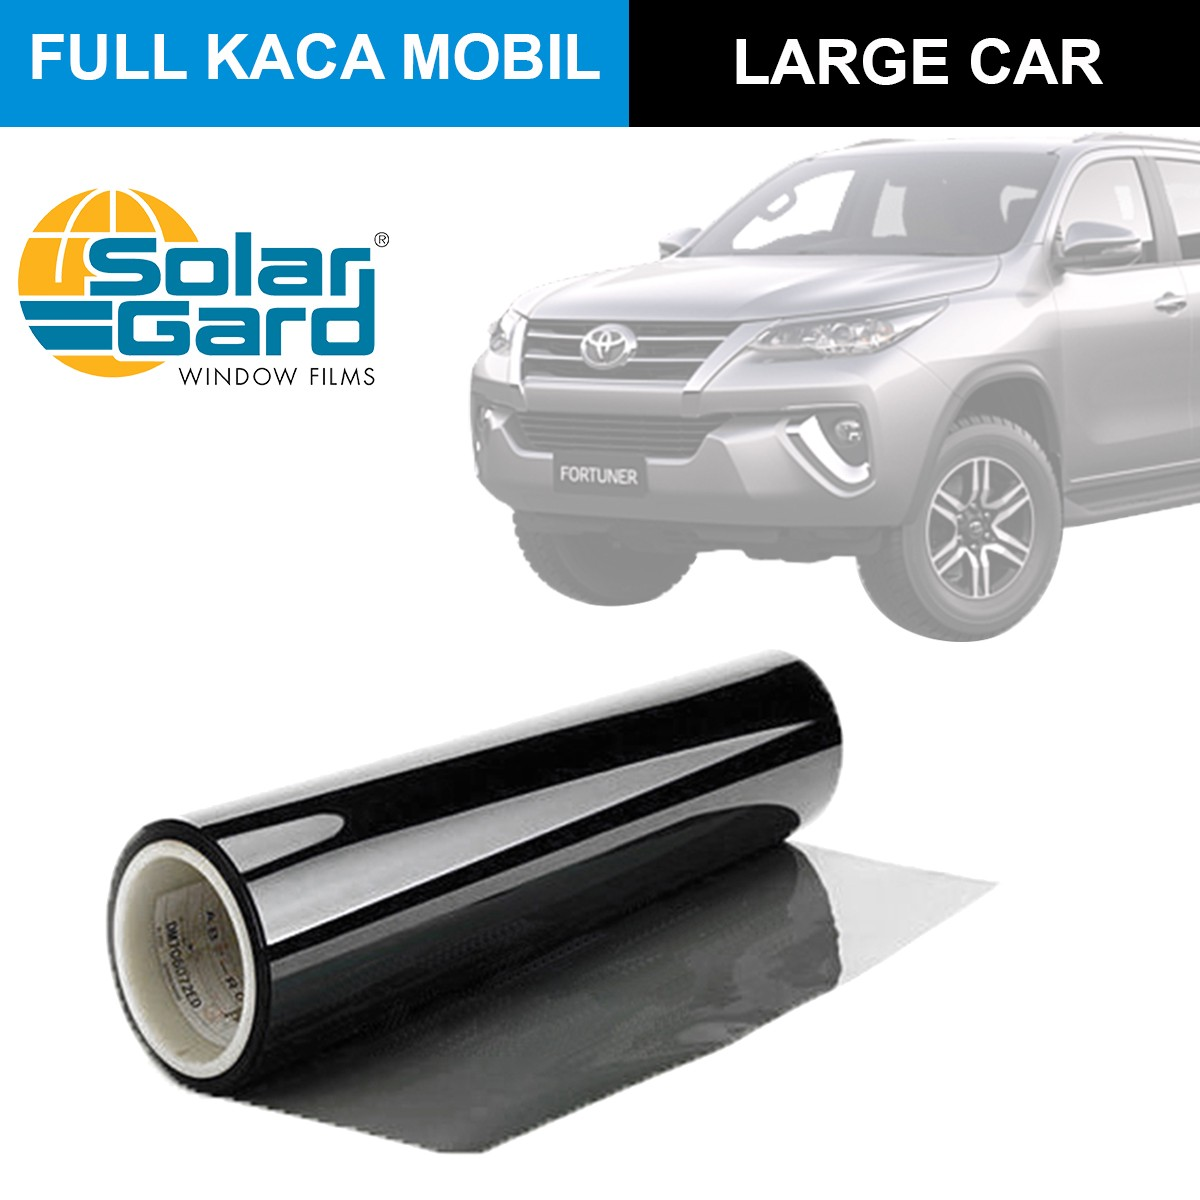 KACA FILM SOLAR GARD MOST FAVORITE - (LARGE CAR) FULL KACA